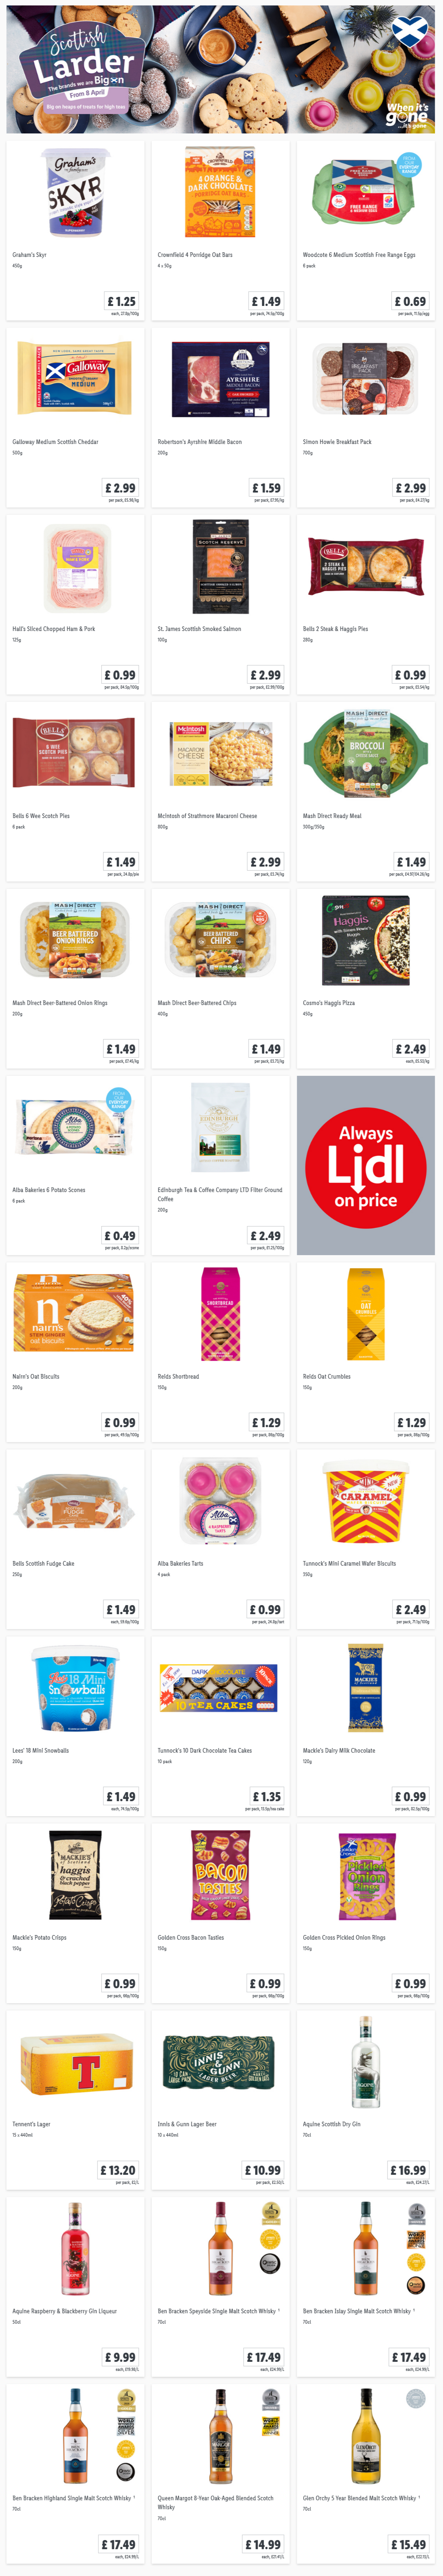 LIDL Offers this Thursday From 8th April 2021 LIDL Scottish Larder (Scotland Only)